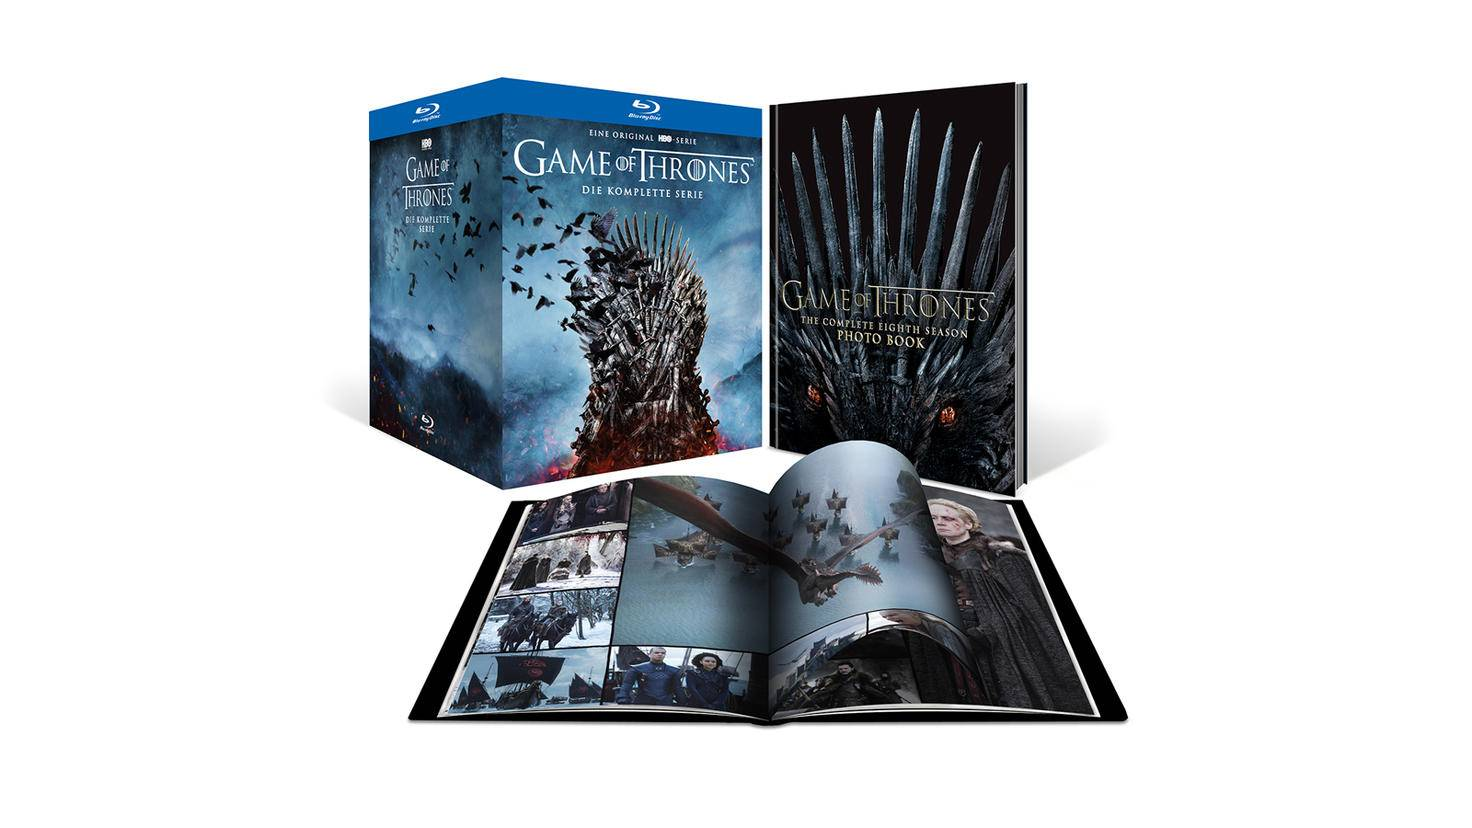 Game of Thrones Blu-ray Box